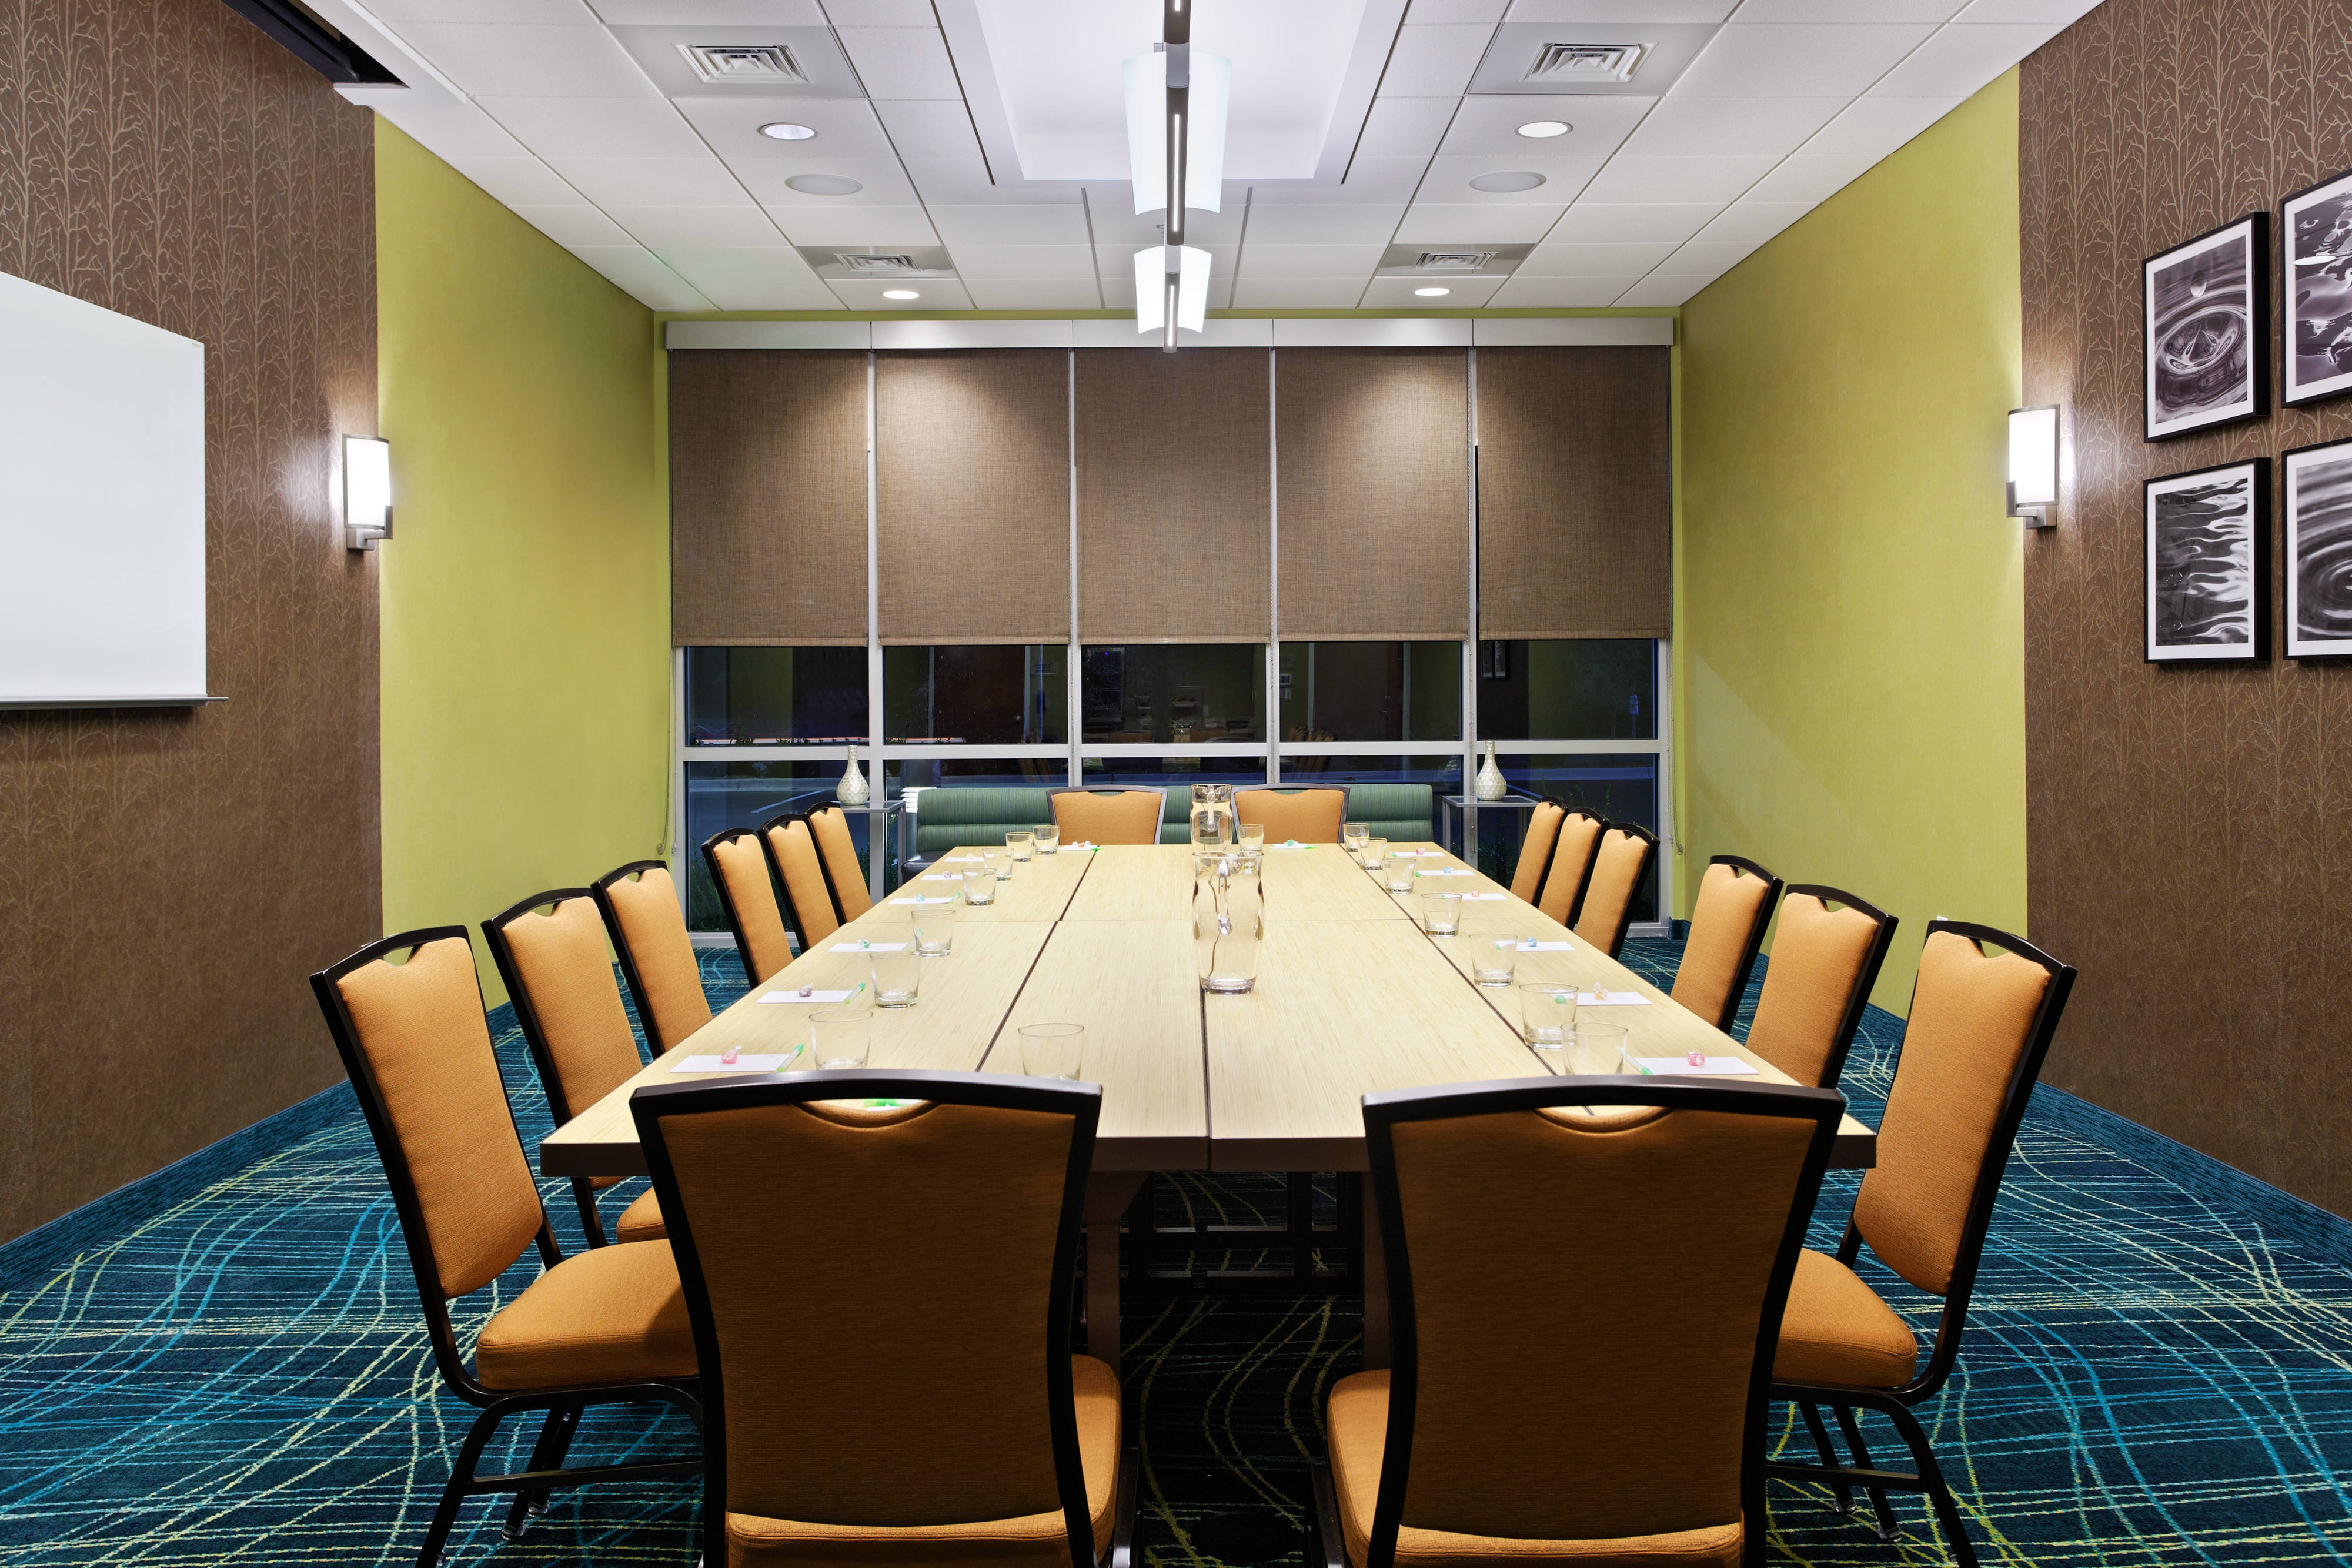 pensacola hotel meeting room